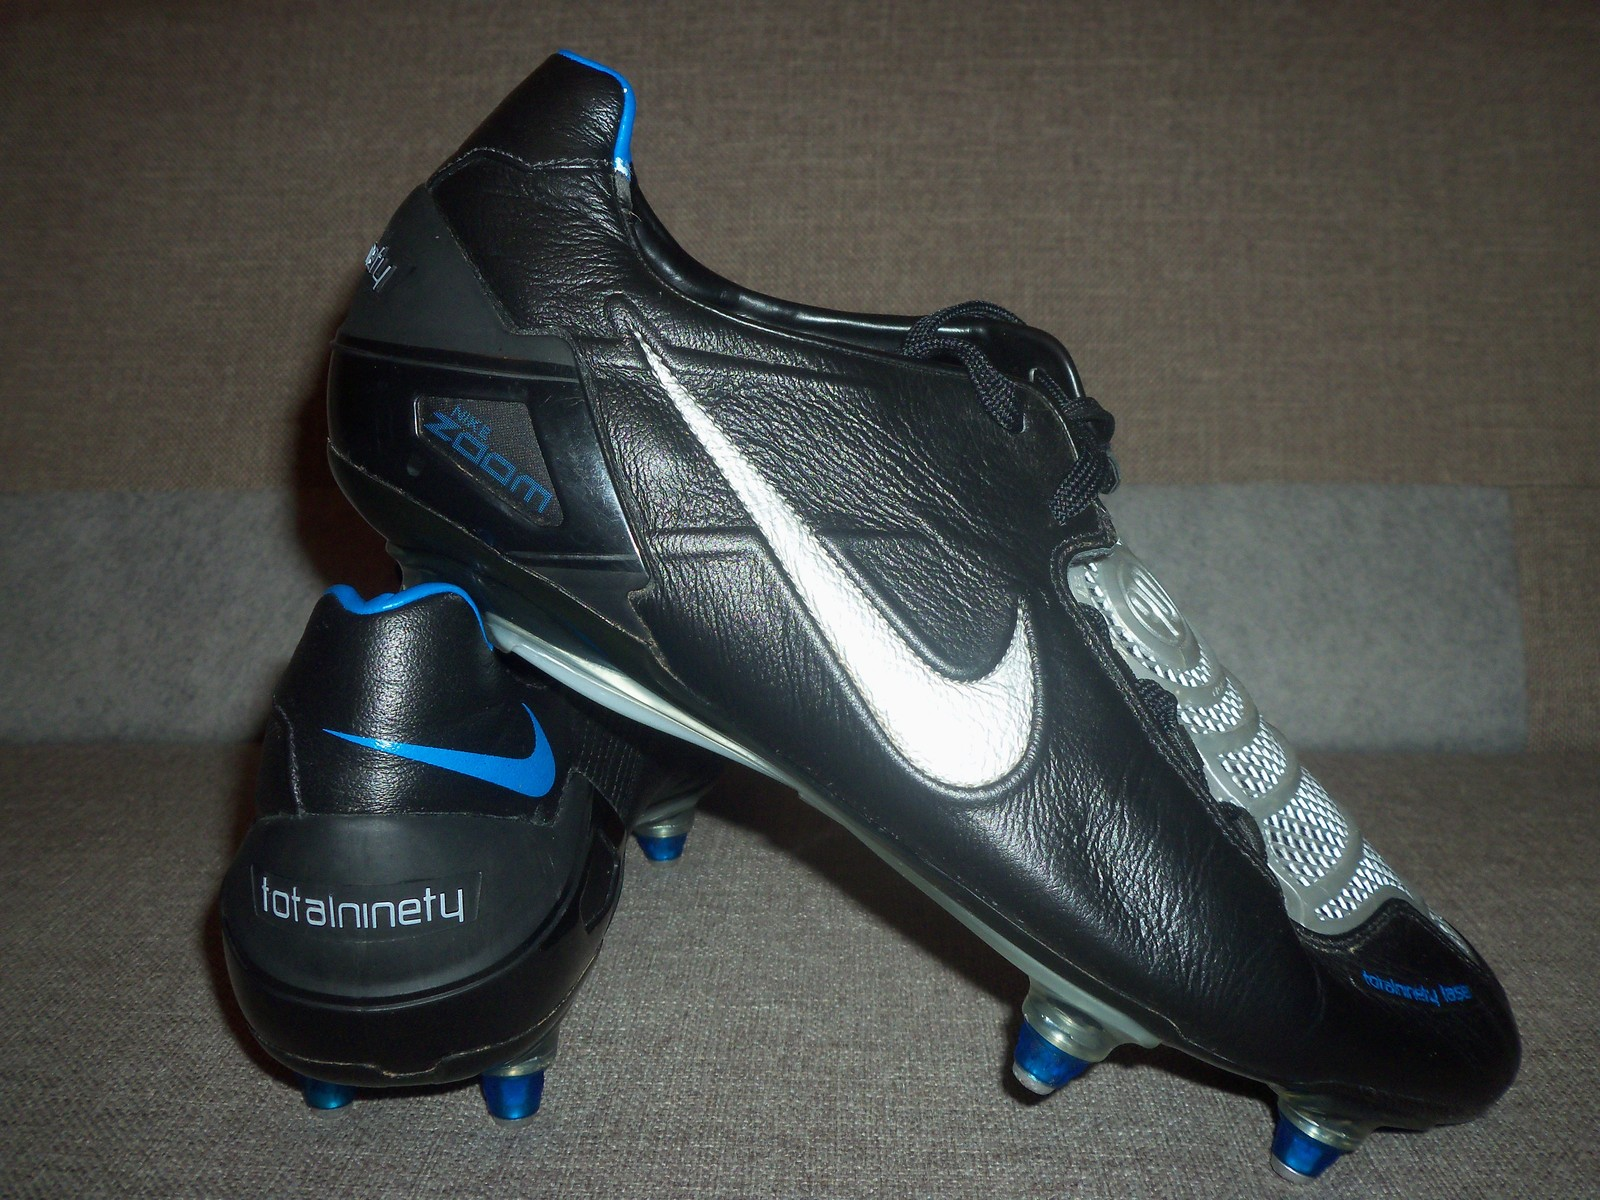 low priced 4fa2b c8a28 NIKE TOTAL 90 LASER I SG Football boots Soccer cleats US 12,5 UK 11